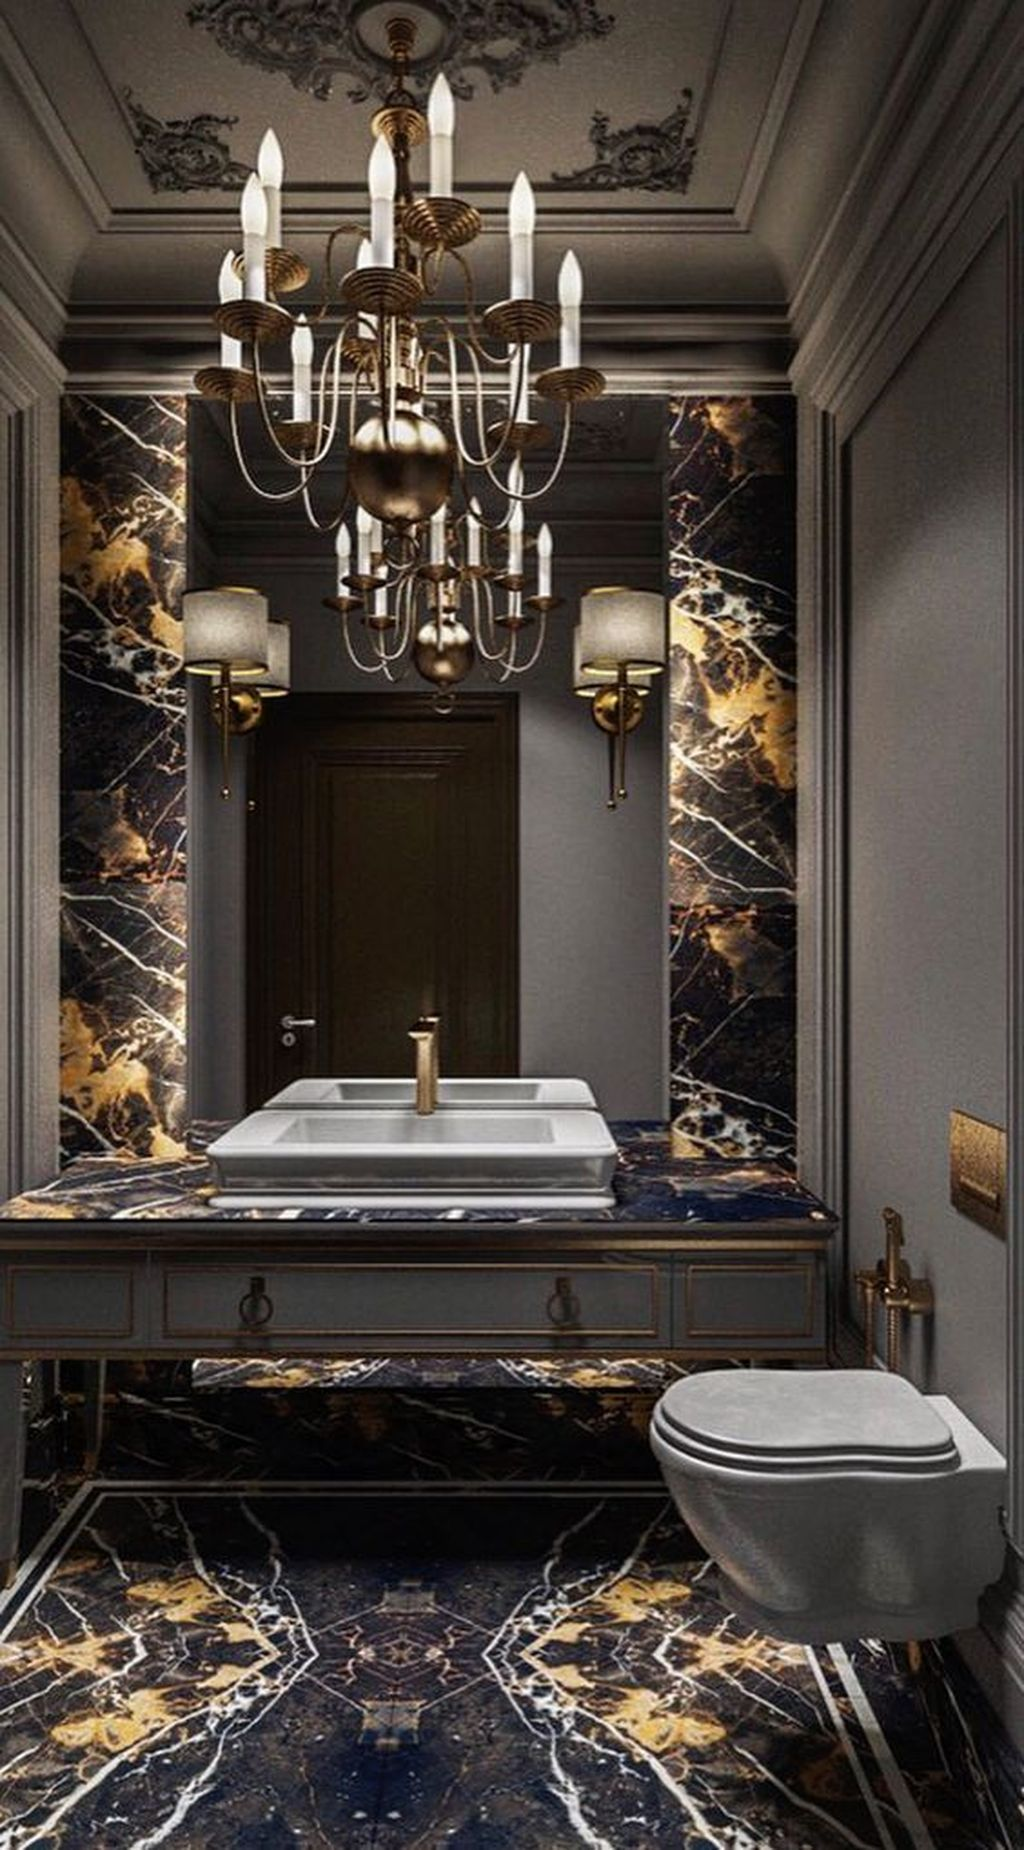 48 Stunning Black Marble Bathroom Design Ideas #bathroomdecoration